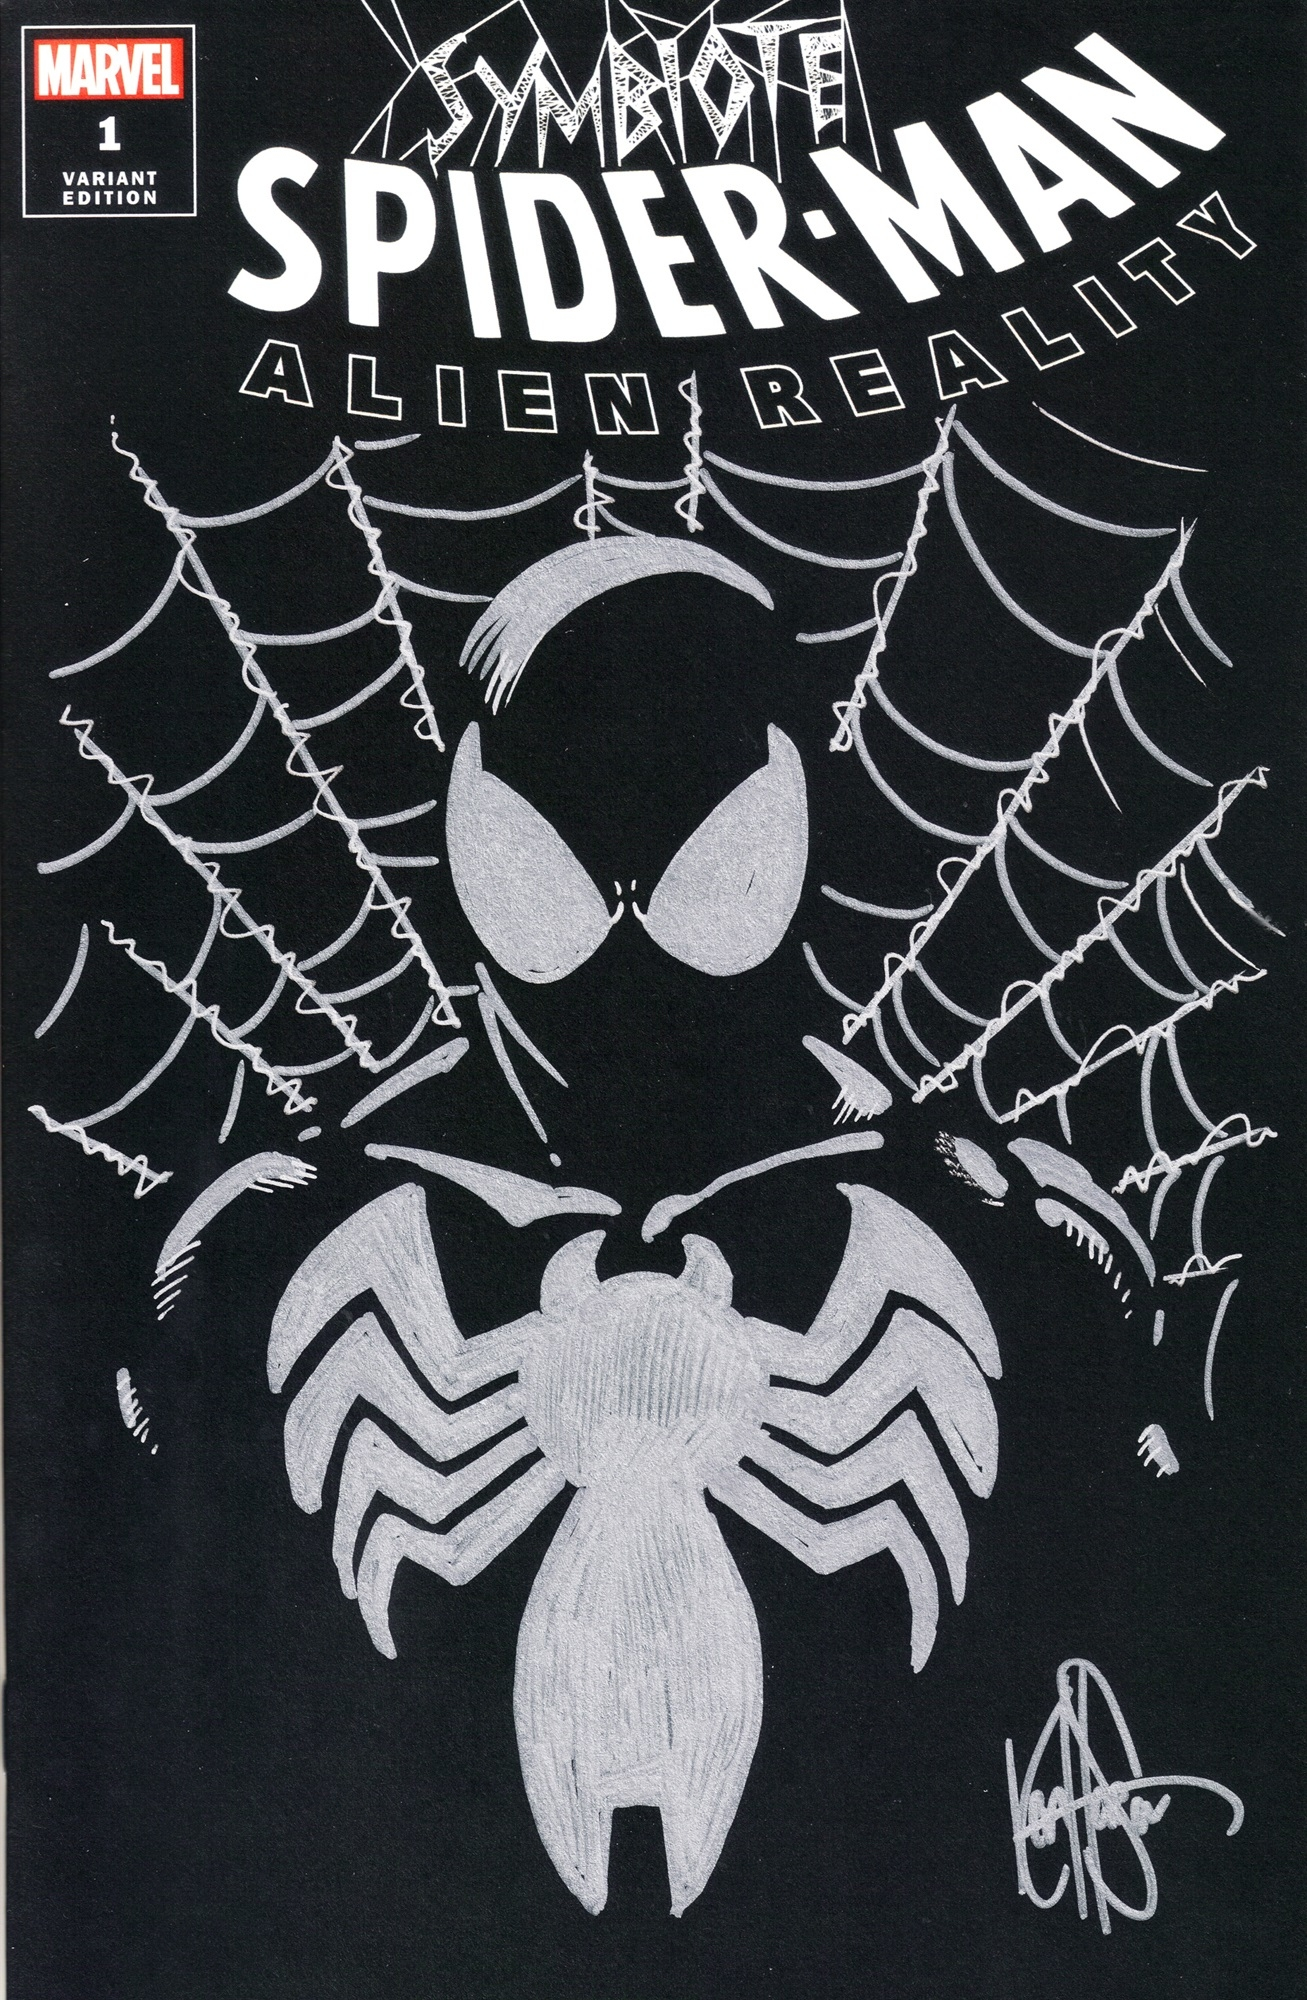 DF SYMBIOTE SPIDERMAN ALIEN REALITY SGN REMARK HAESER